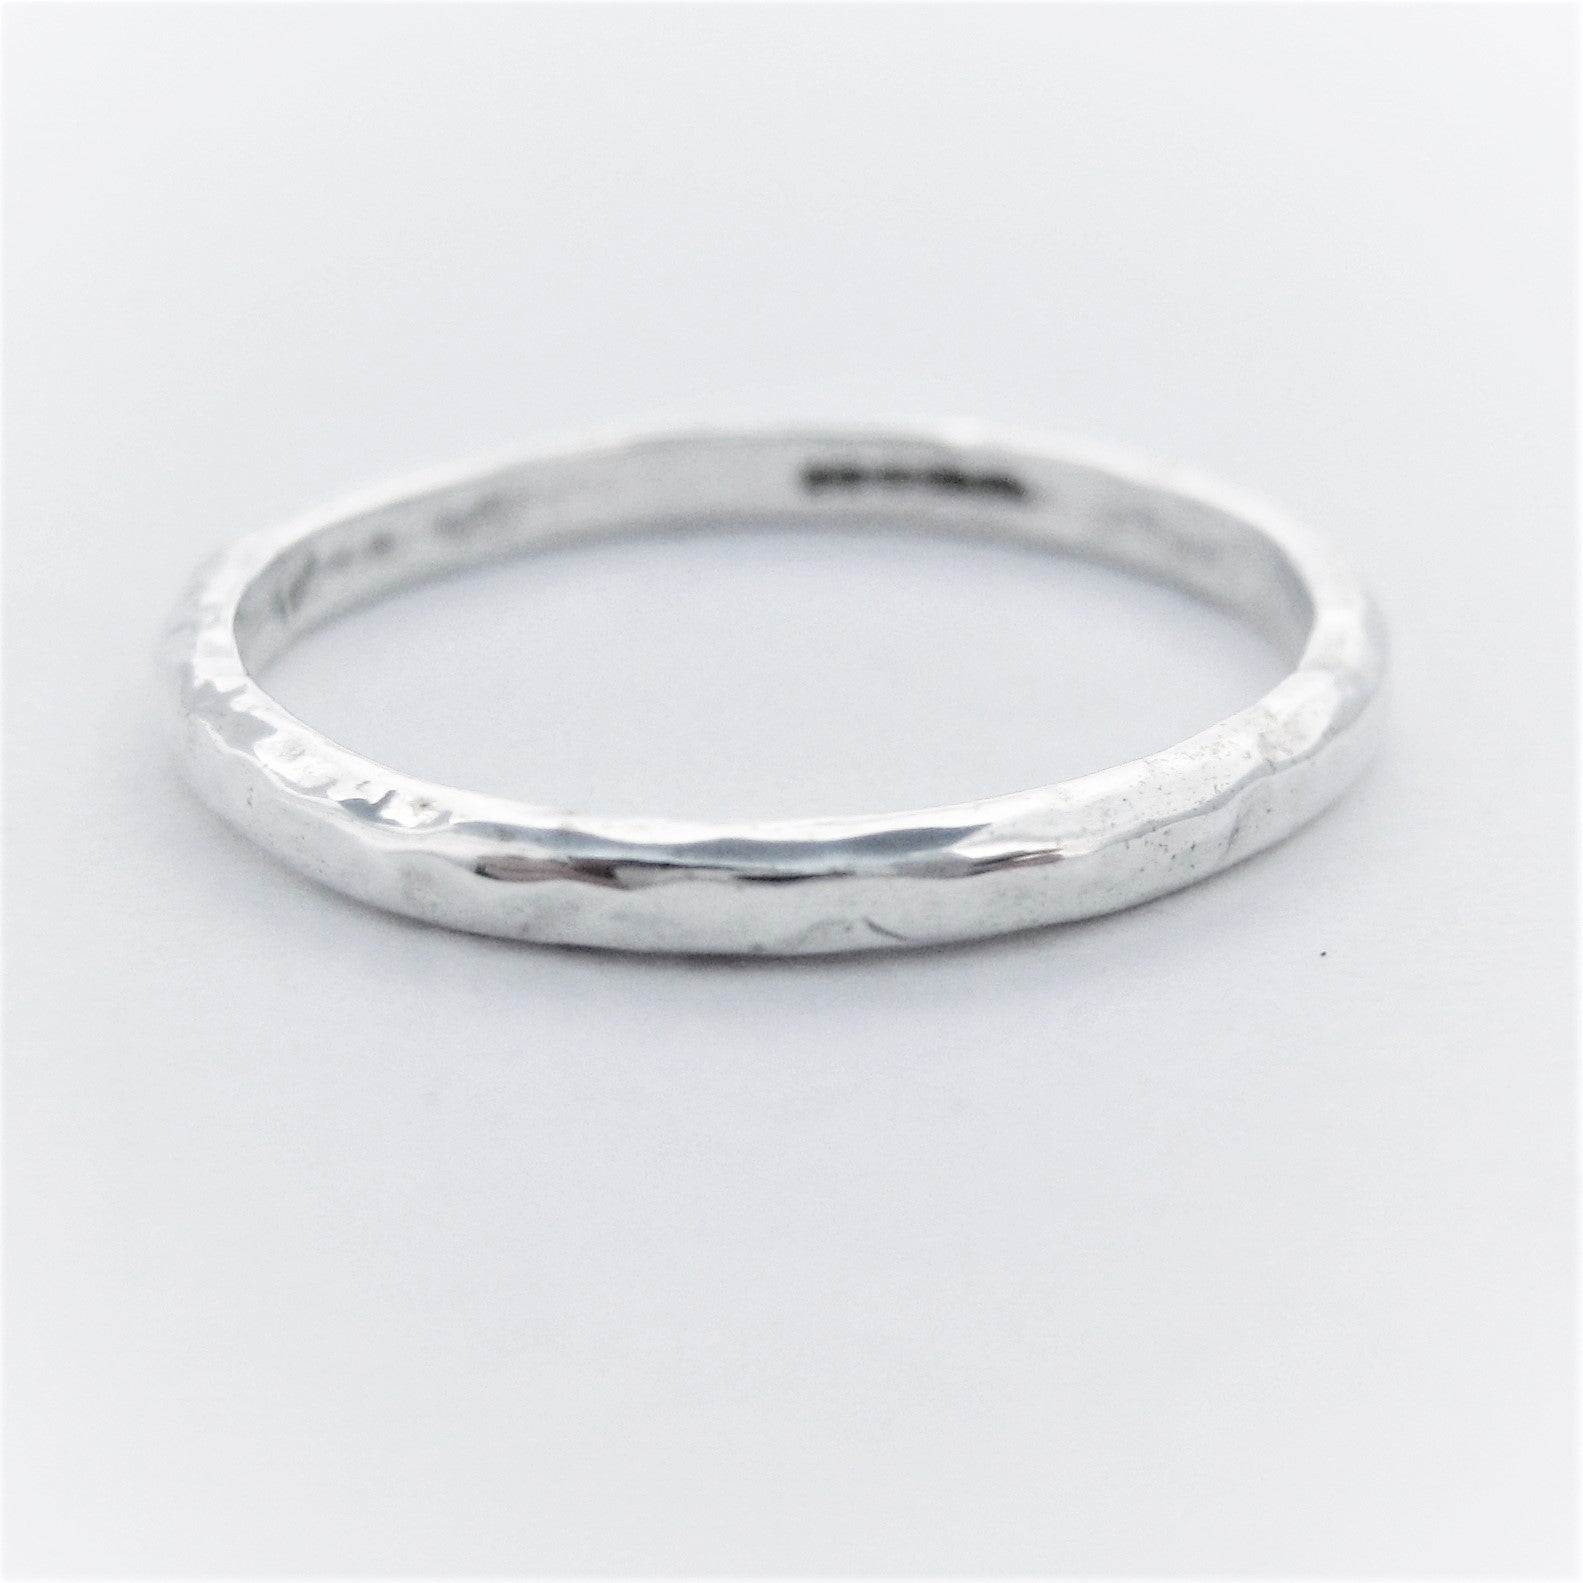 Textured ring 2mm (rnd)